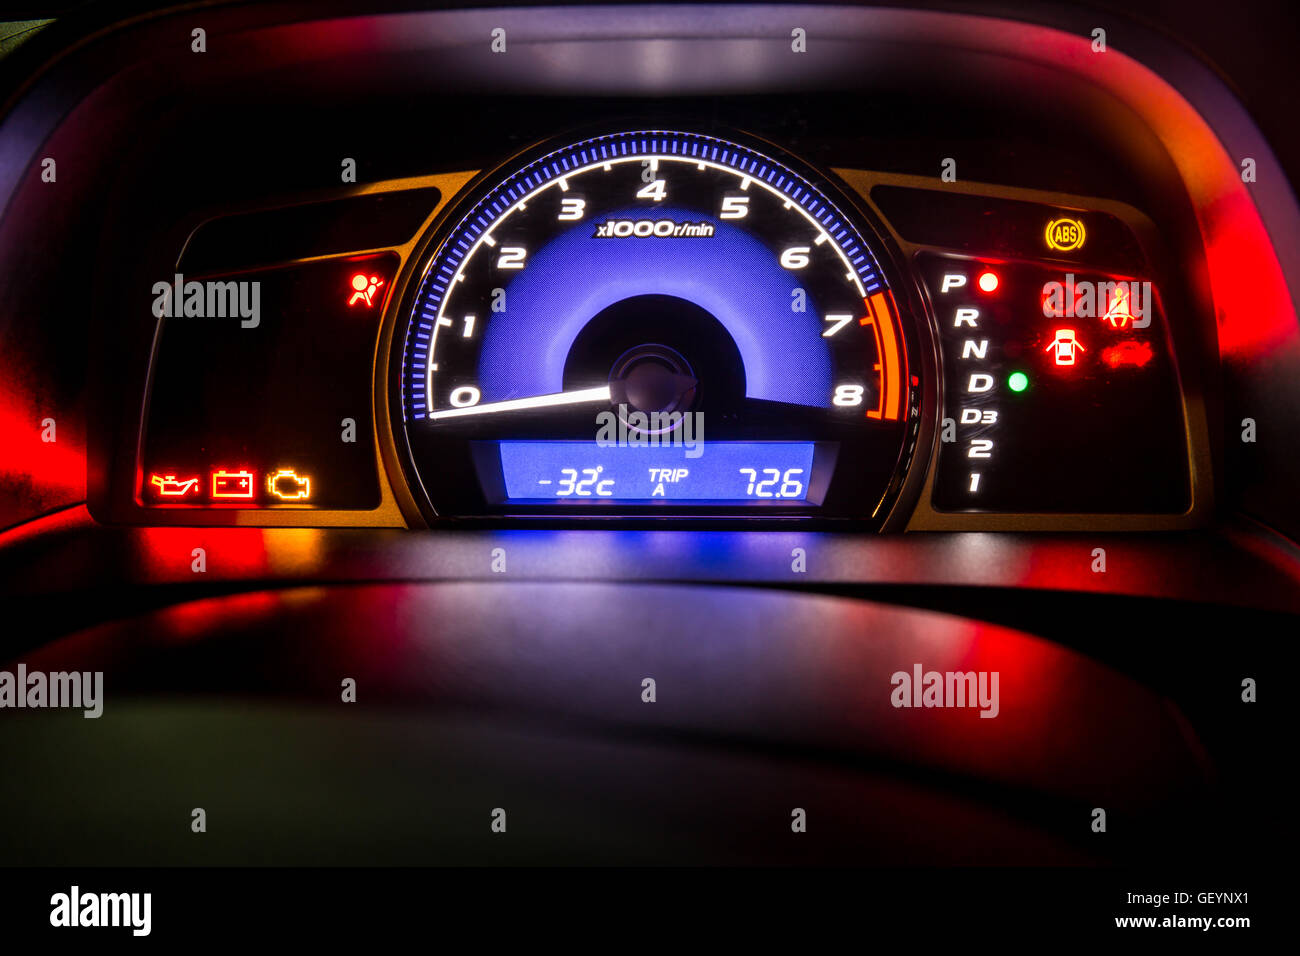 Modern Car Instrument Dashboard Panel Full Symbol In Night Time - Car image sign of dashboardcar dashboard icons stock photospictures royalty free car